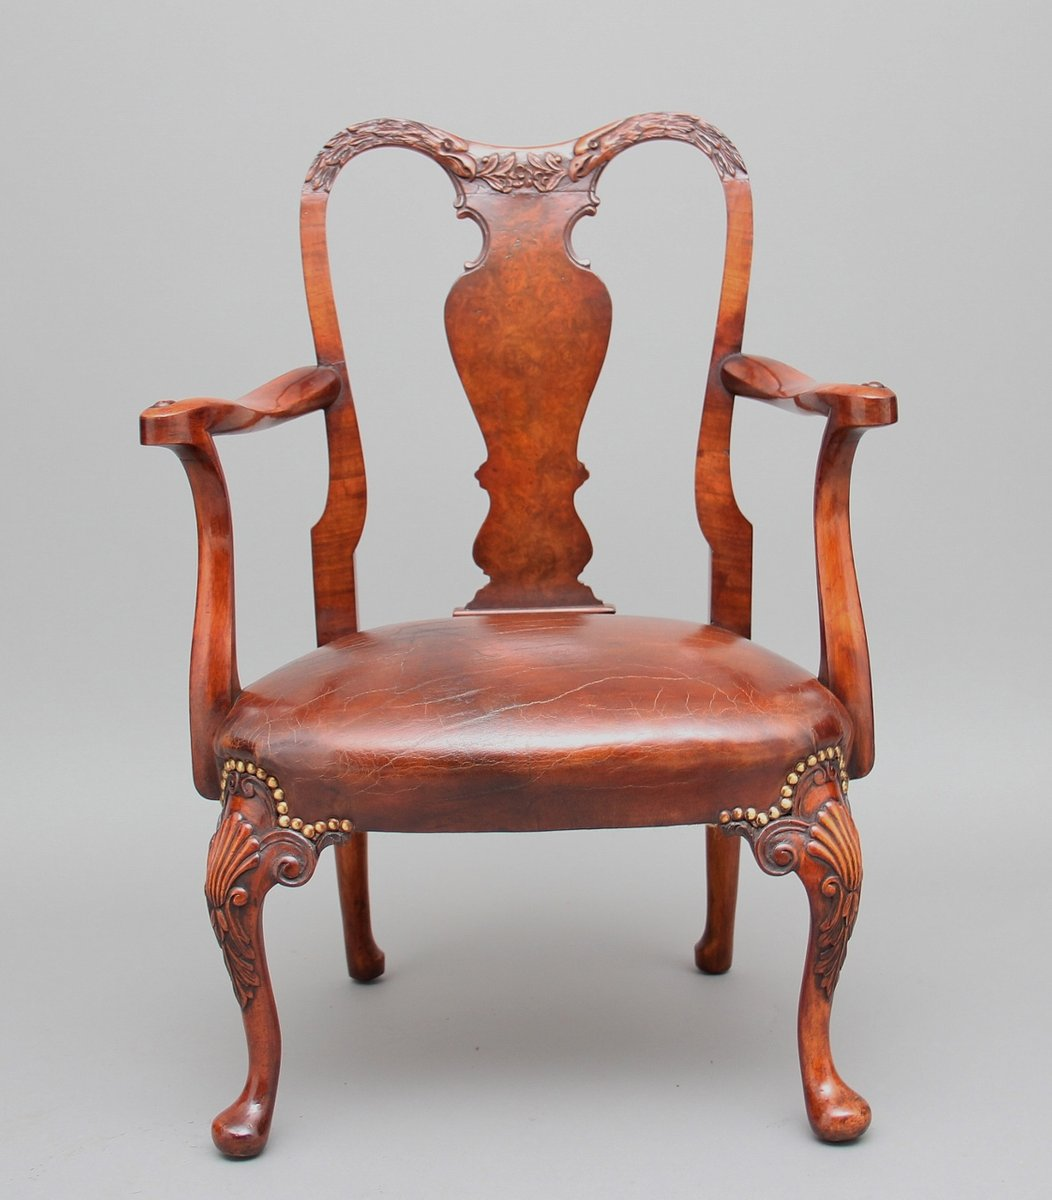 Vintage Queen Anne Style Childs Chair - Vintage Queen Anne Style Childs Chair For Sale At Pamono